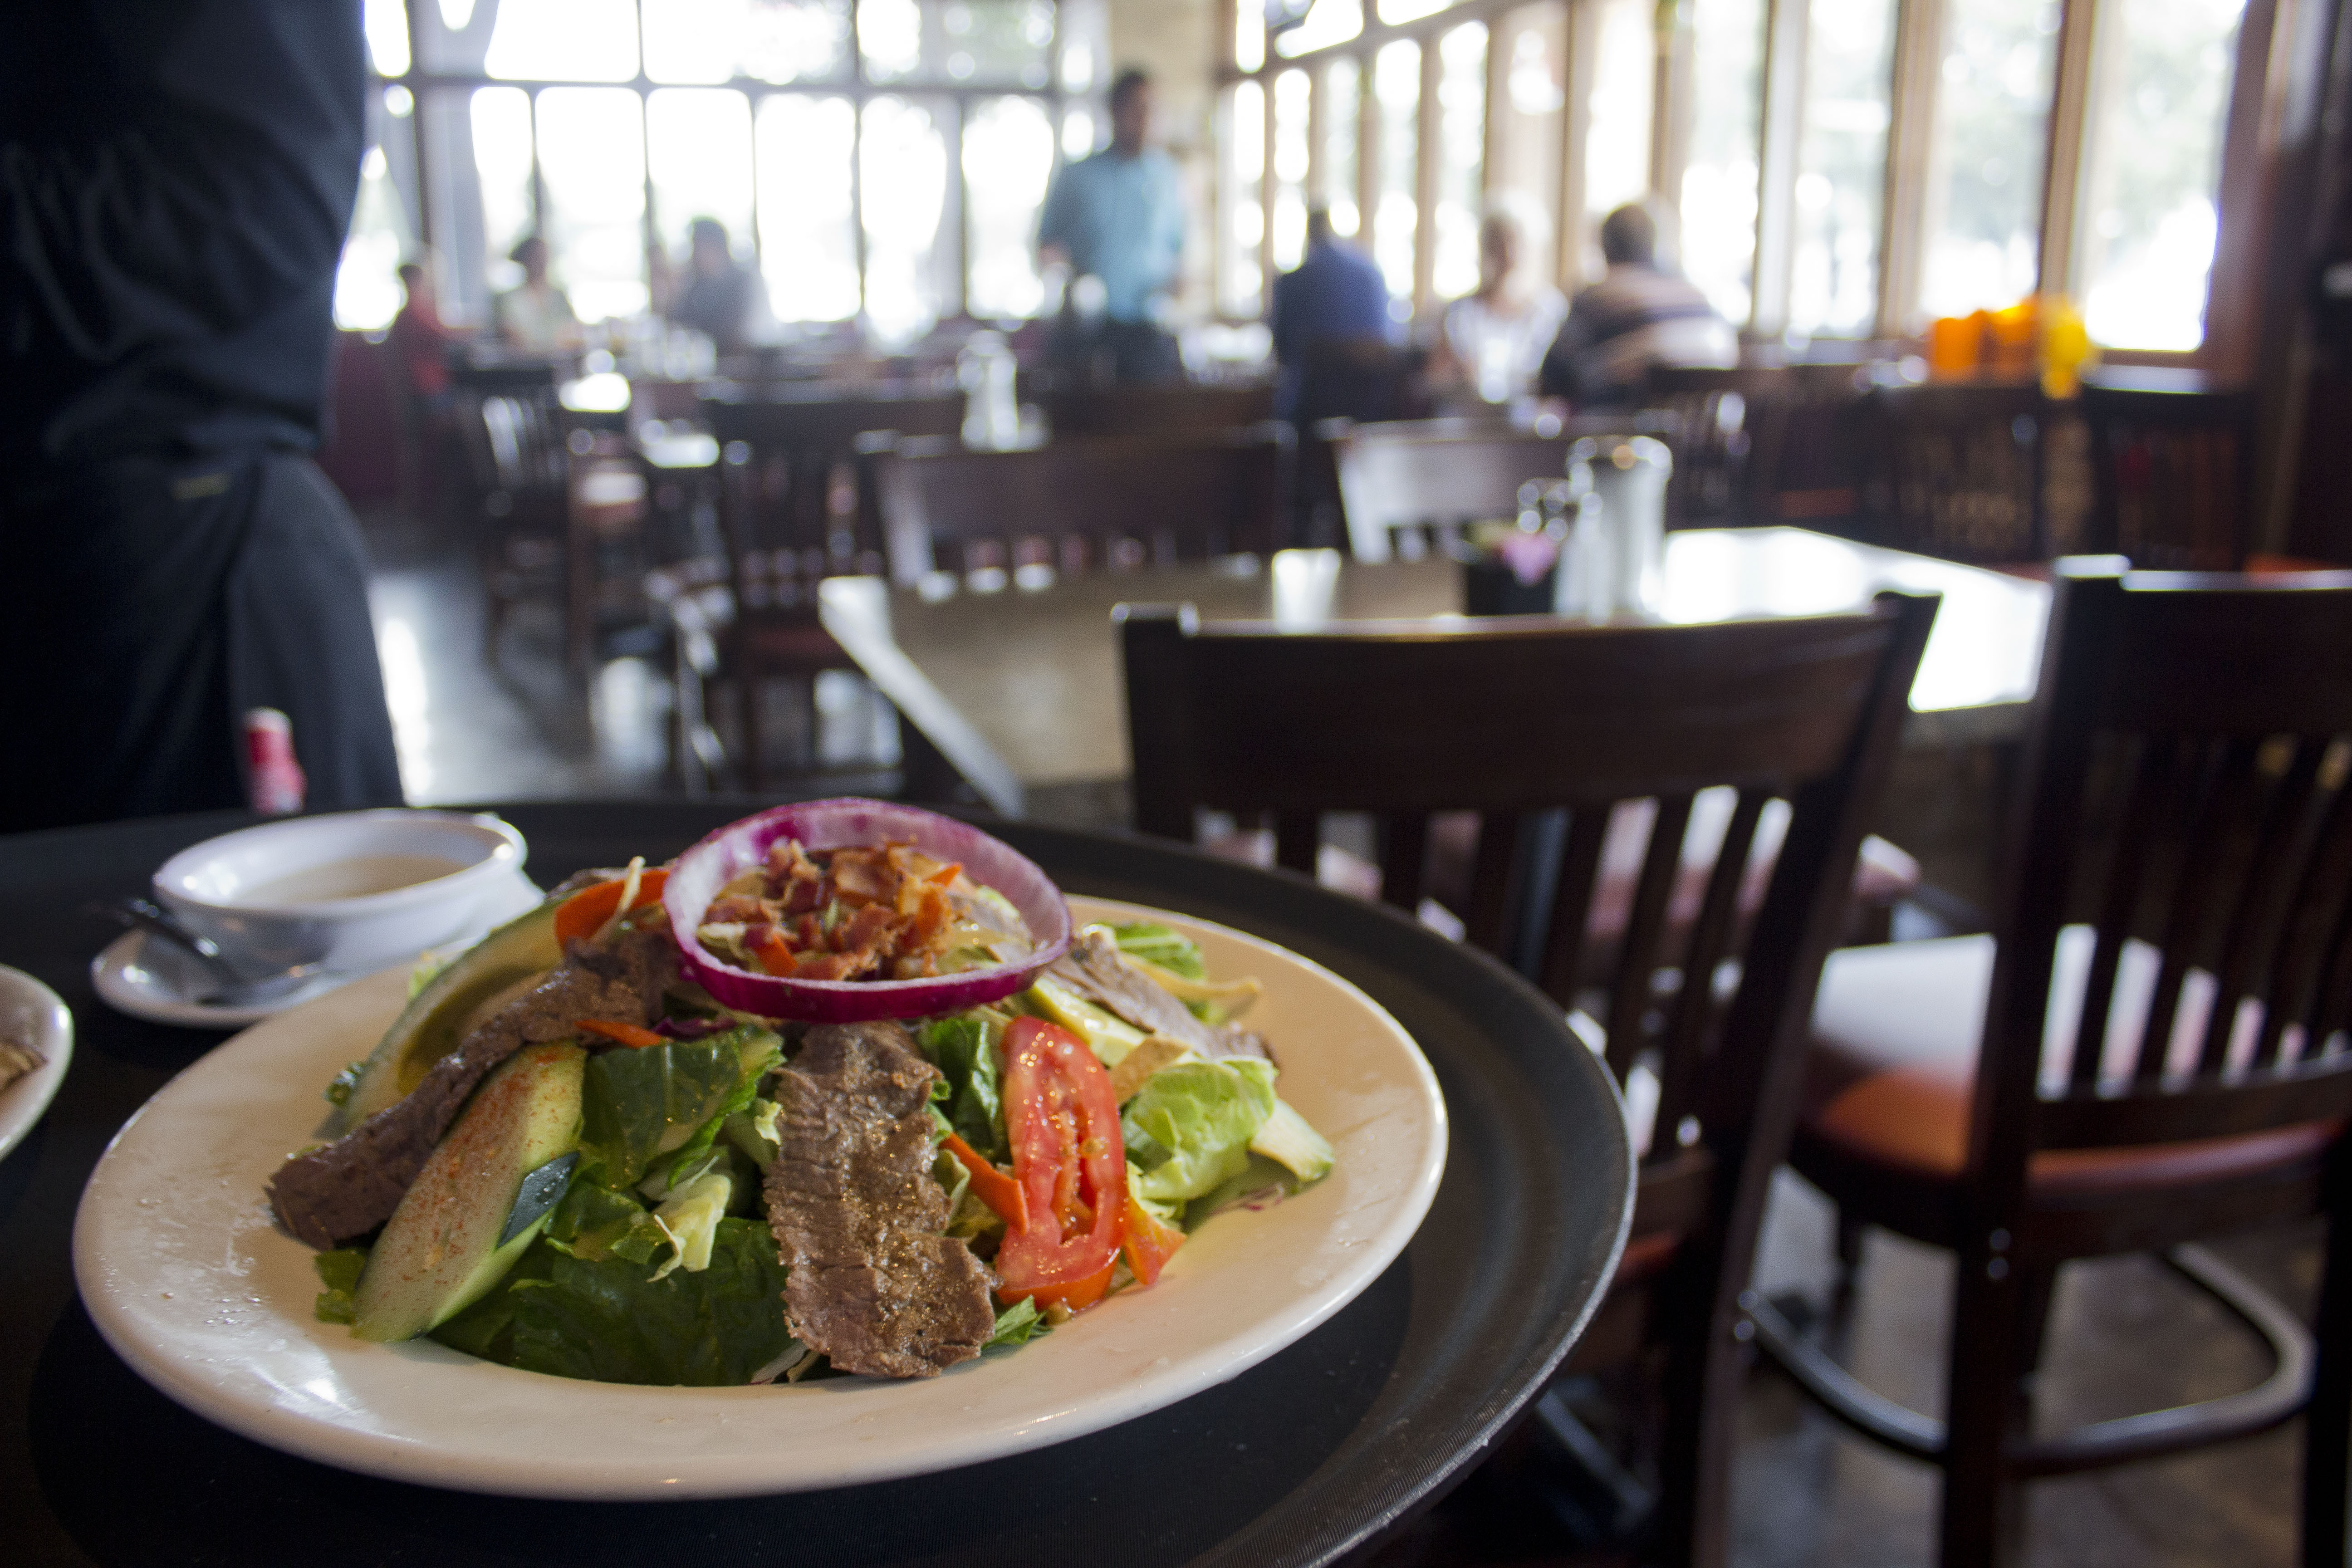 New Tex-Mex eatery good for casual outing